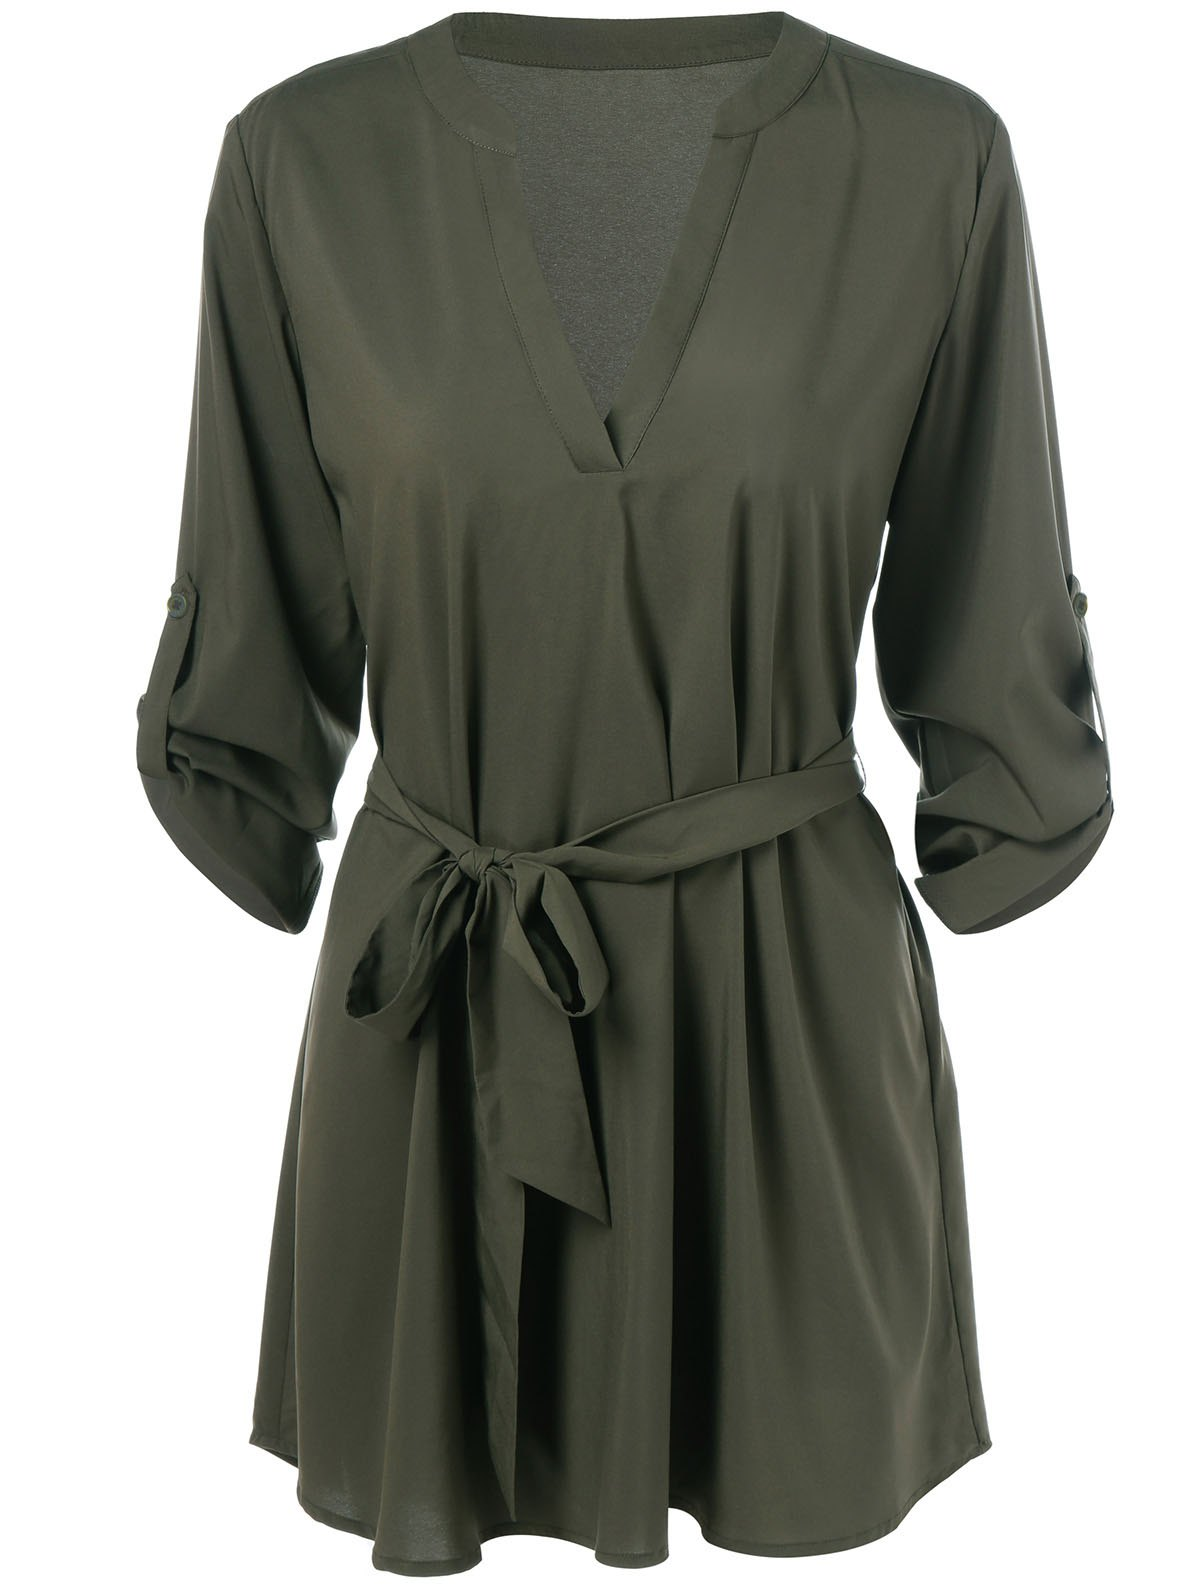 Adjustable Sleeve Dress With Belt - ARMY GREEN M